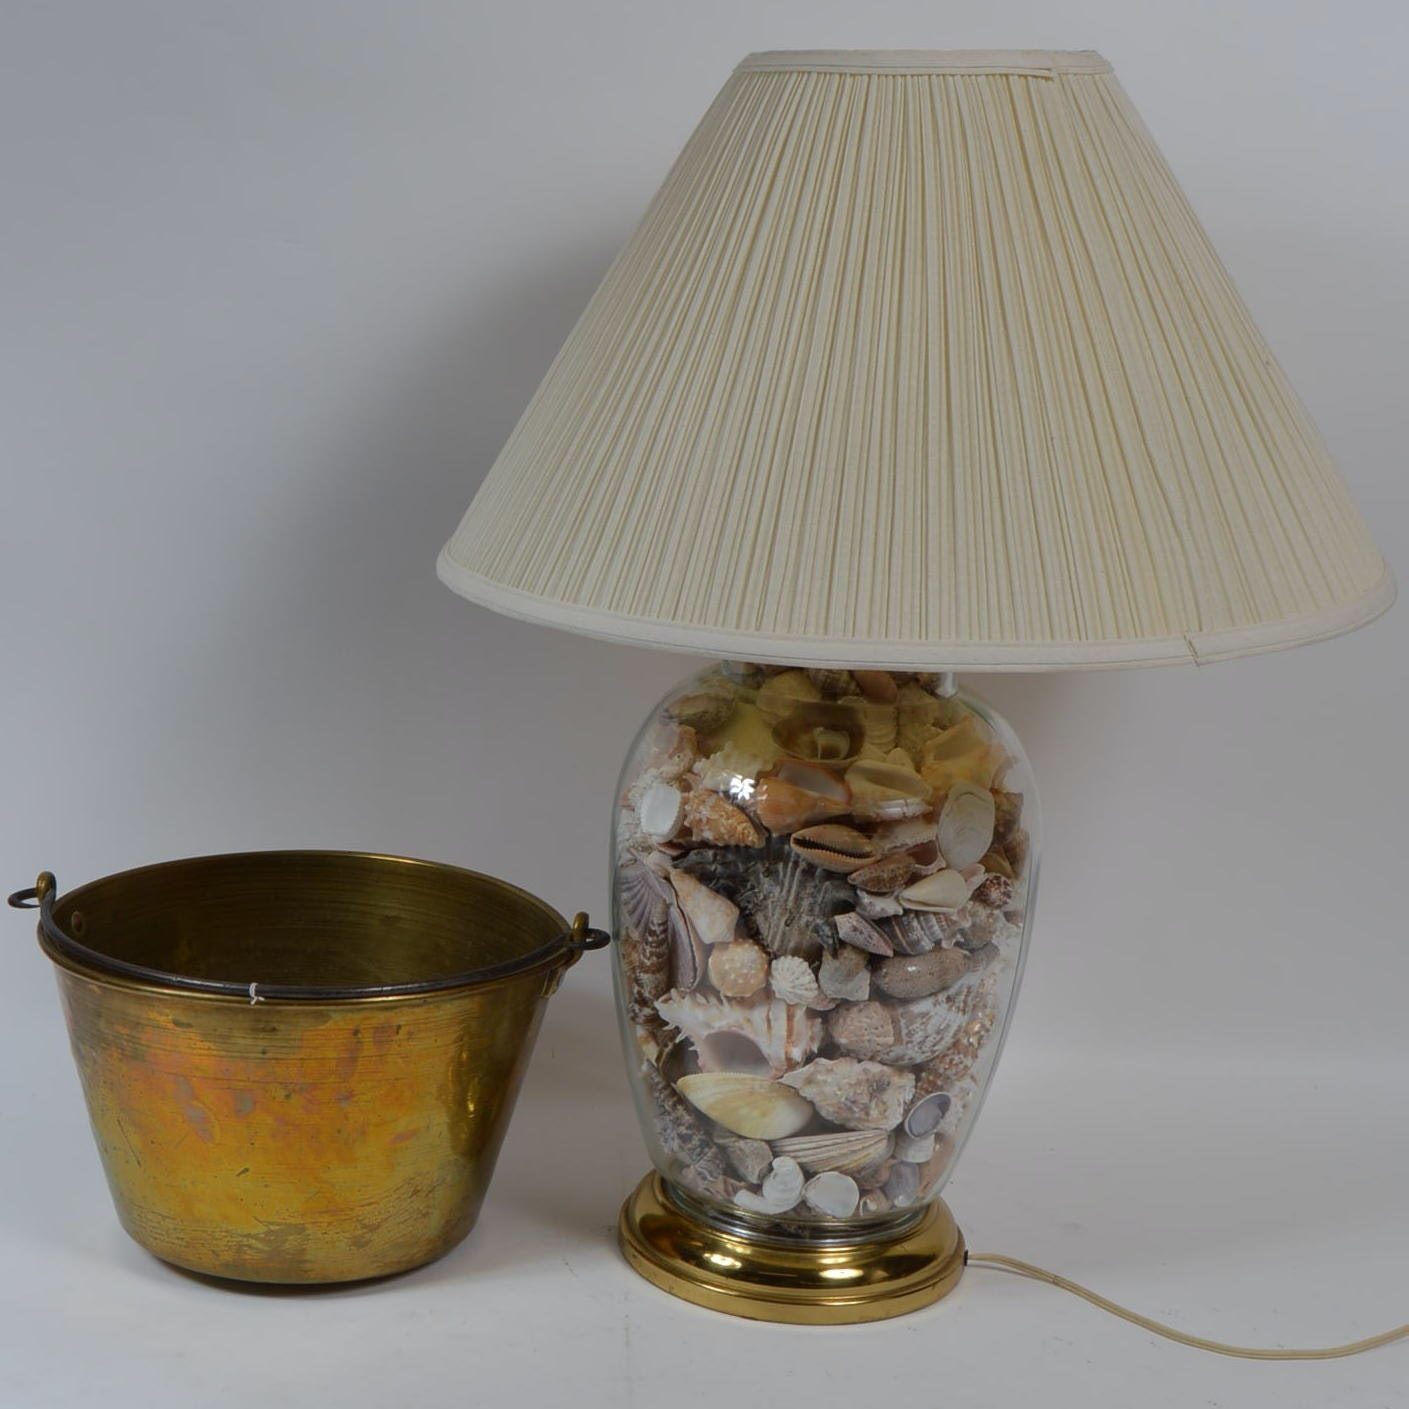 Brass and Shell Accent Lamp and Brass Bucket